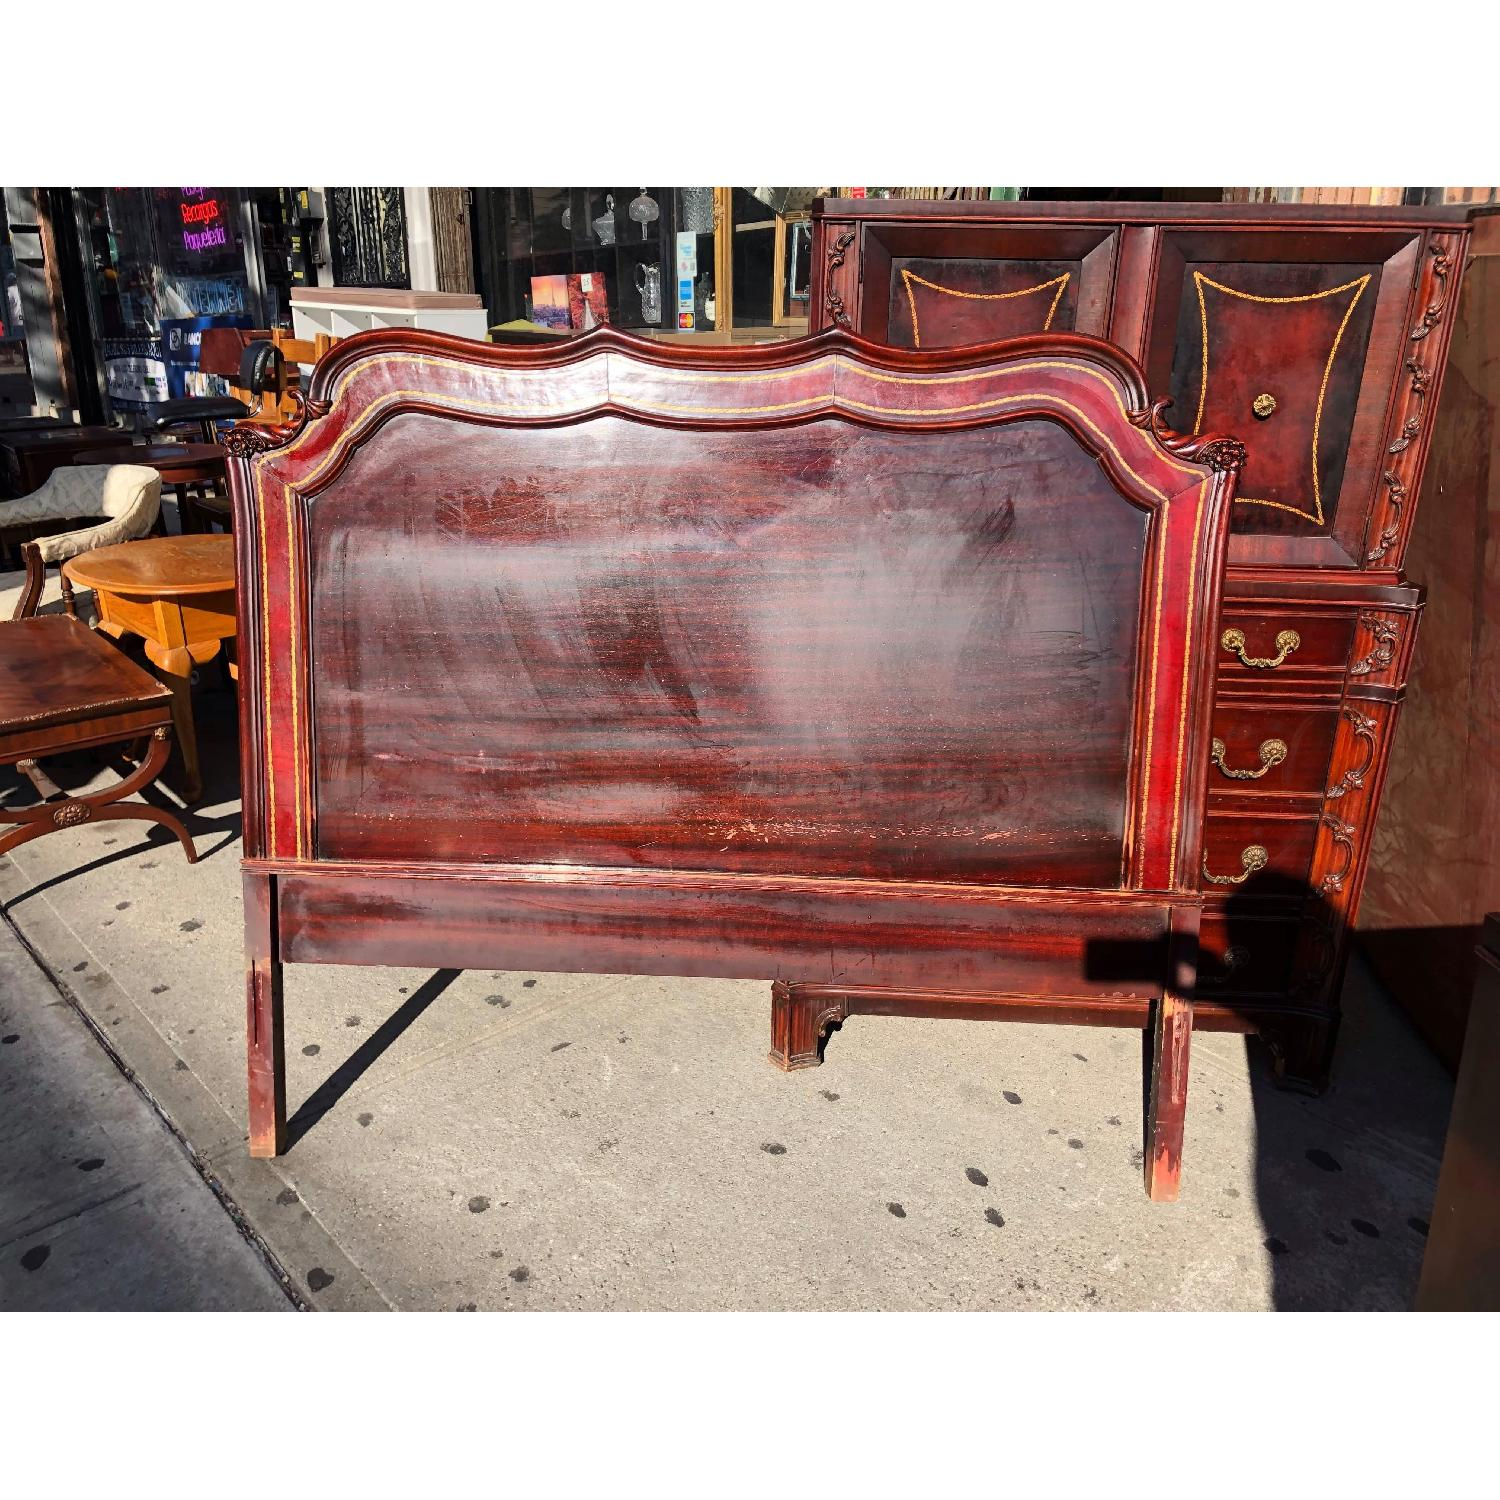 Antique 1930s Cherry Wood & Leather Full Size Headboard - image-1